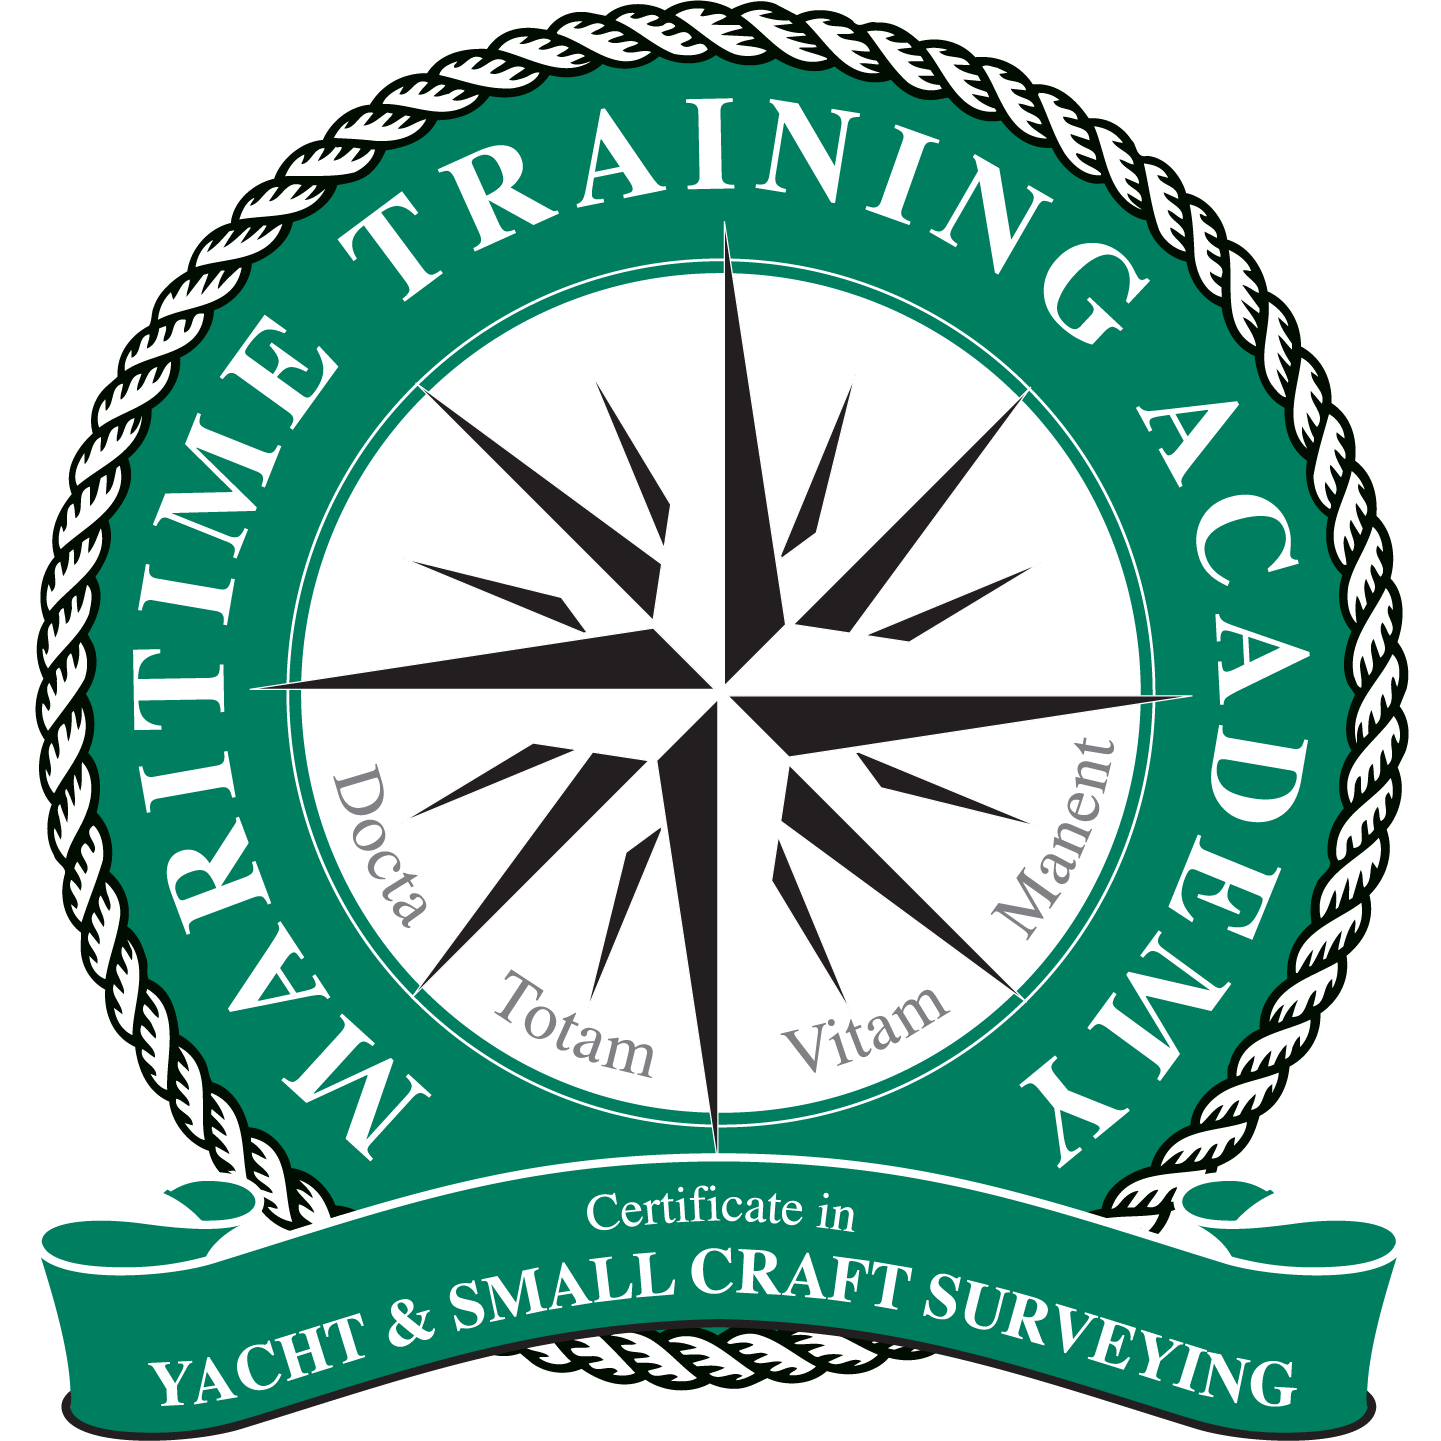 Maritime Training Academy Yacht & Small Craft Surveying Certification Logo